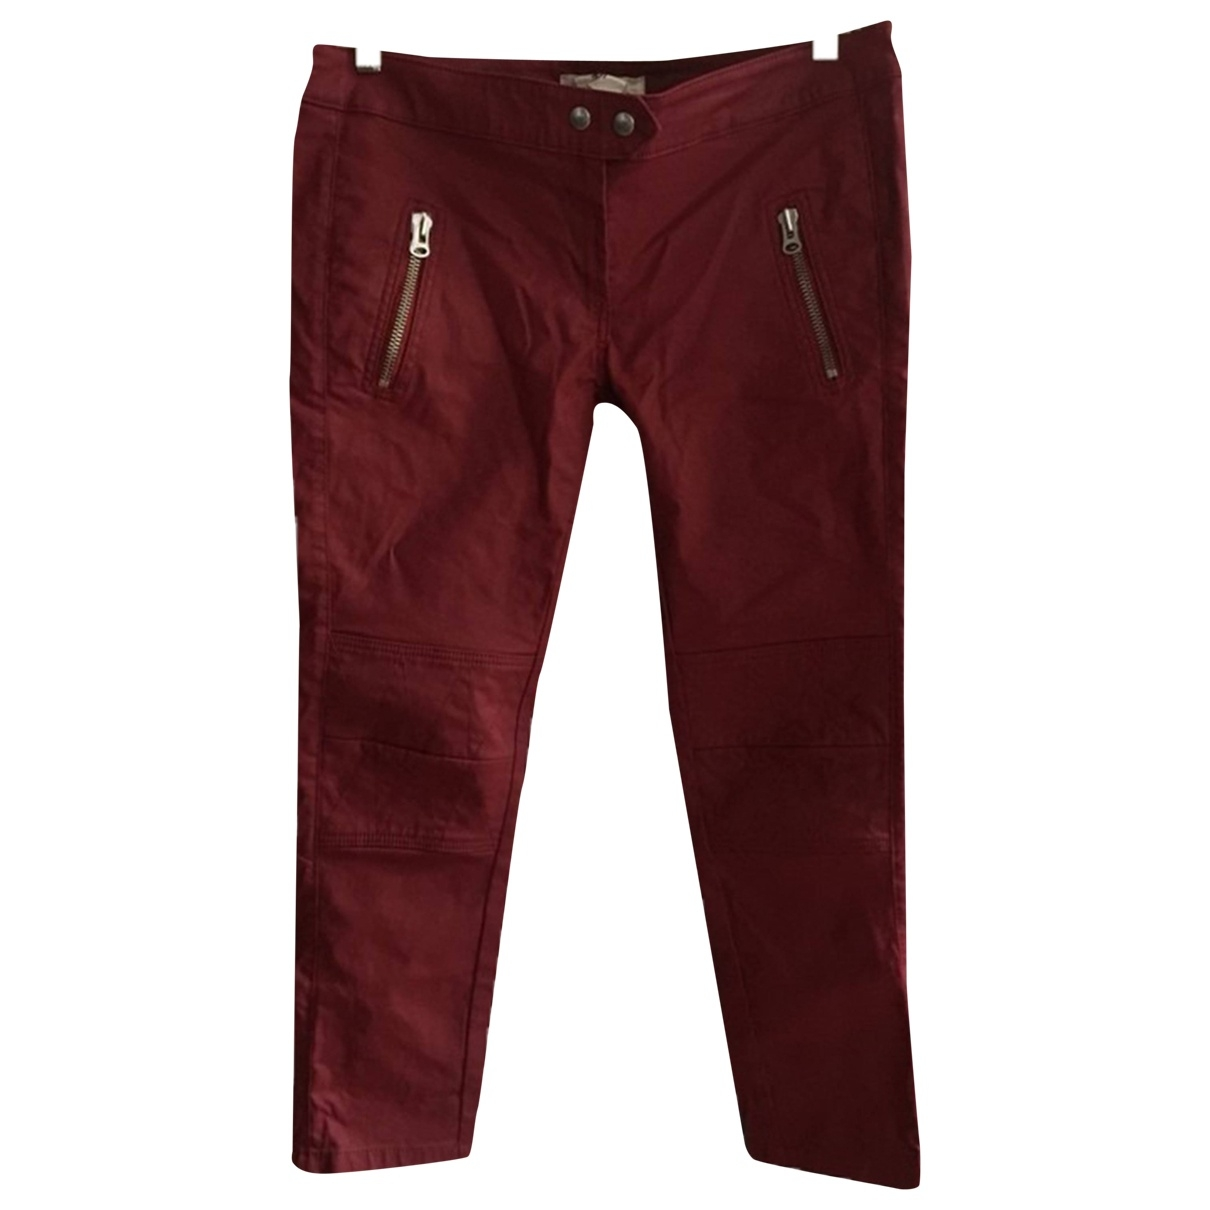 Isabel Marant Pour H&m \N Red Cotton Trousers for Women 12 UK